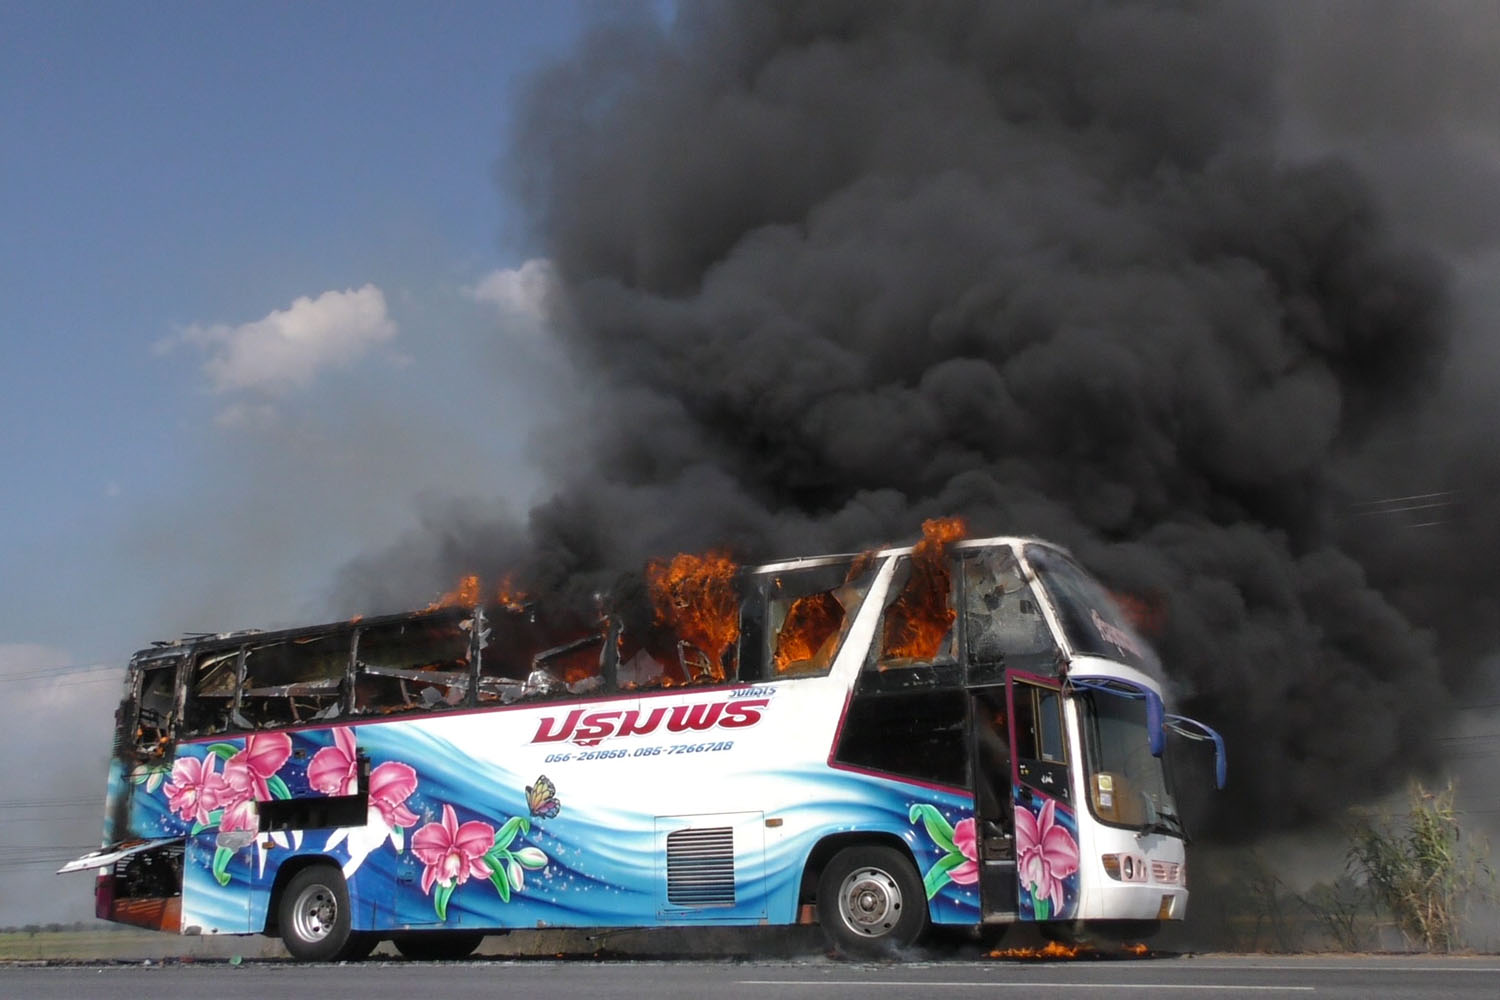 An air-conditioned bus catches fire on Asia Highway in Manorom district of Chai Nat province on Sunday. (Photo by Chudate Seehawong)